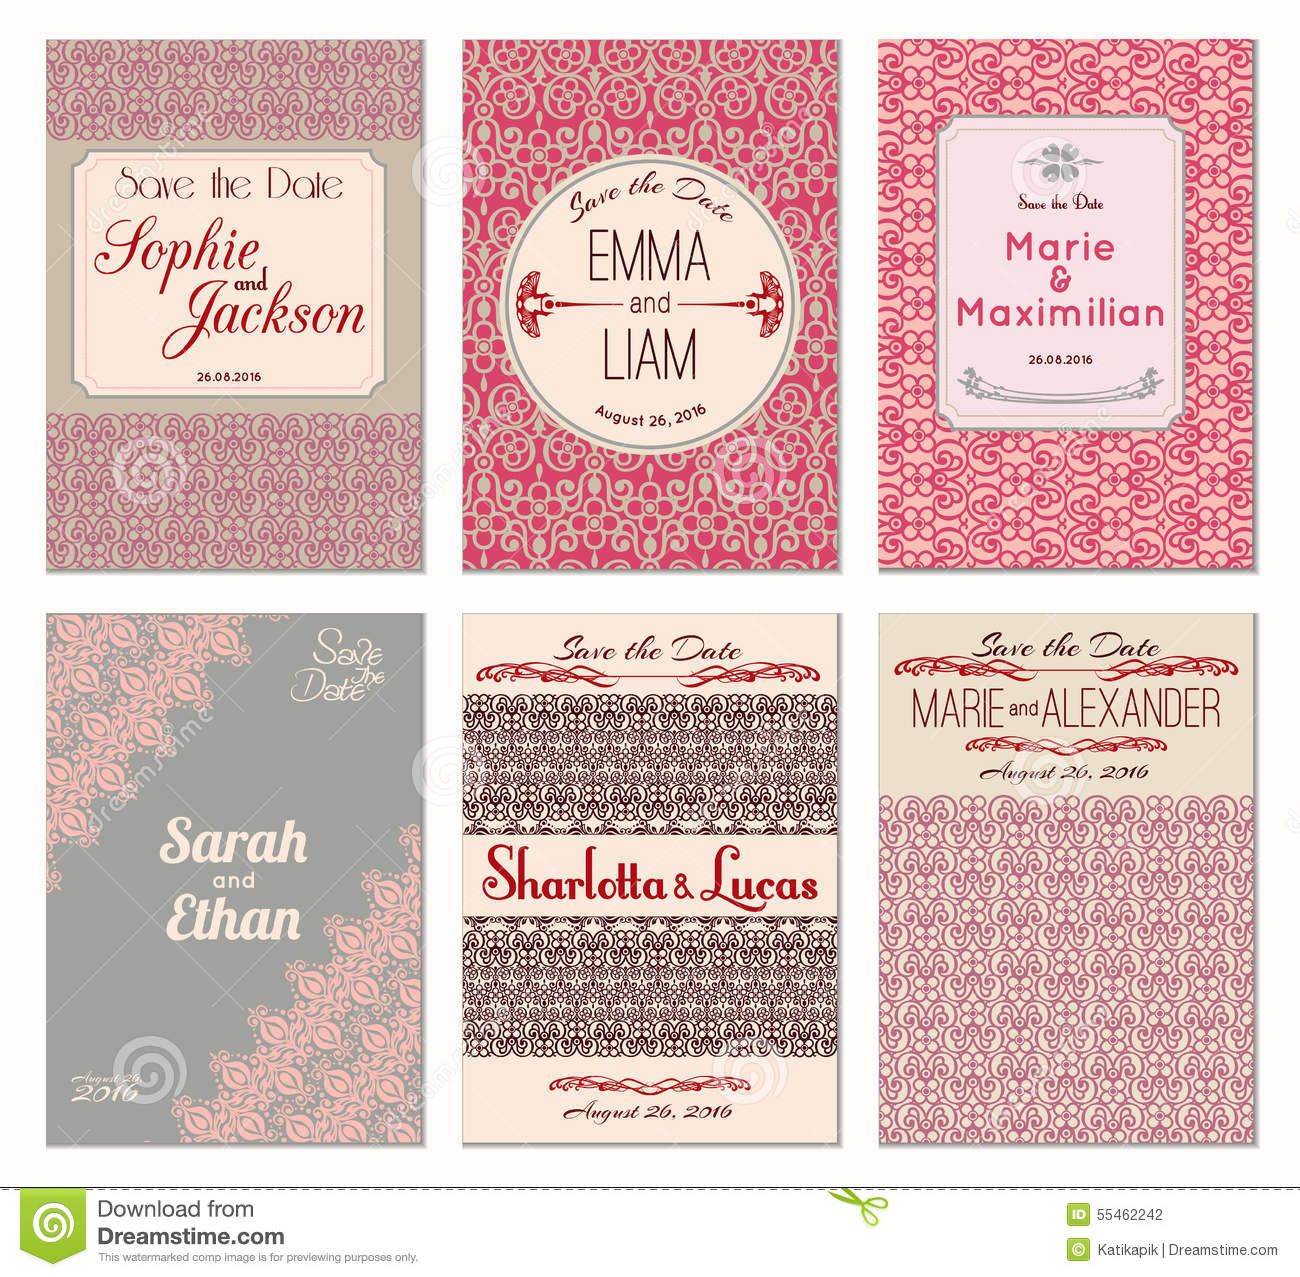 Edit Wedding Invitation Card: Save The Date Ornate Frame. Easy To Edit. Perfect For